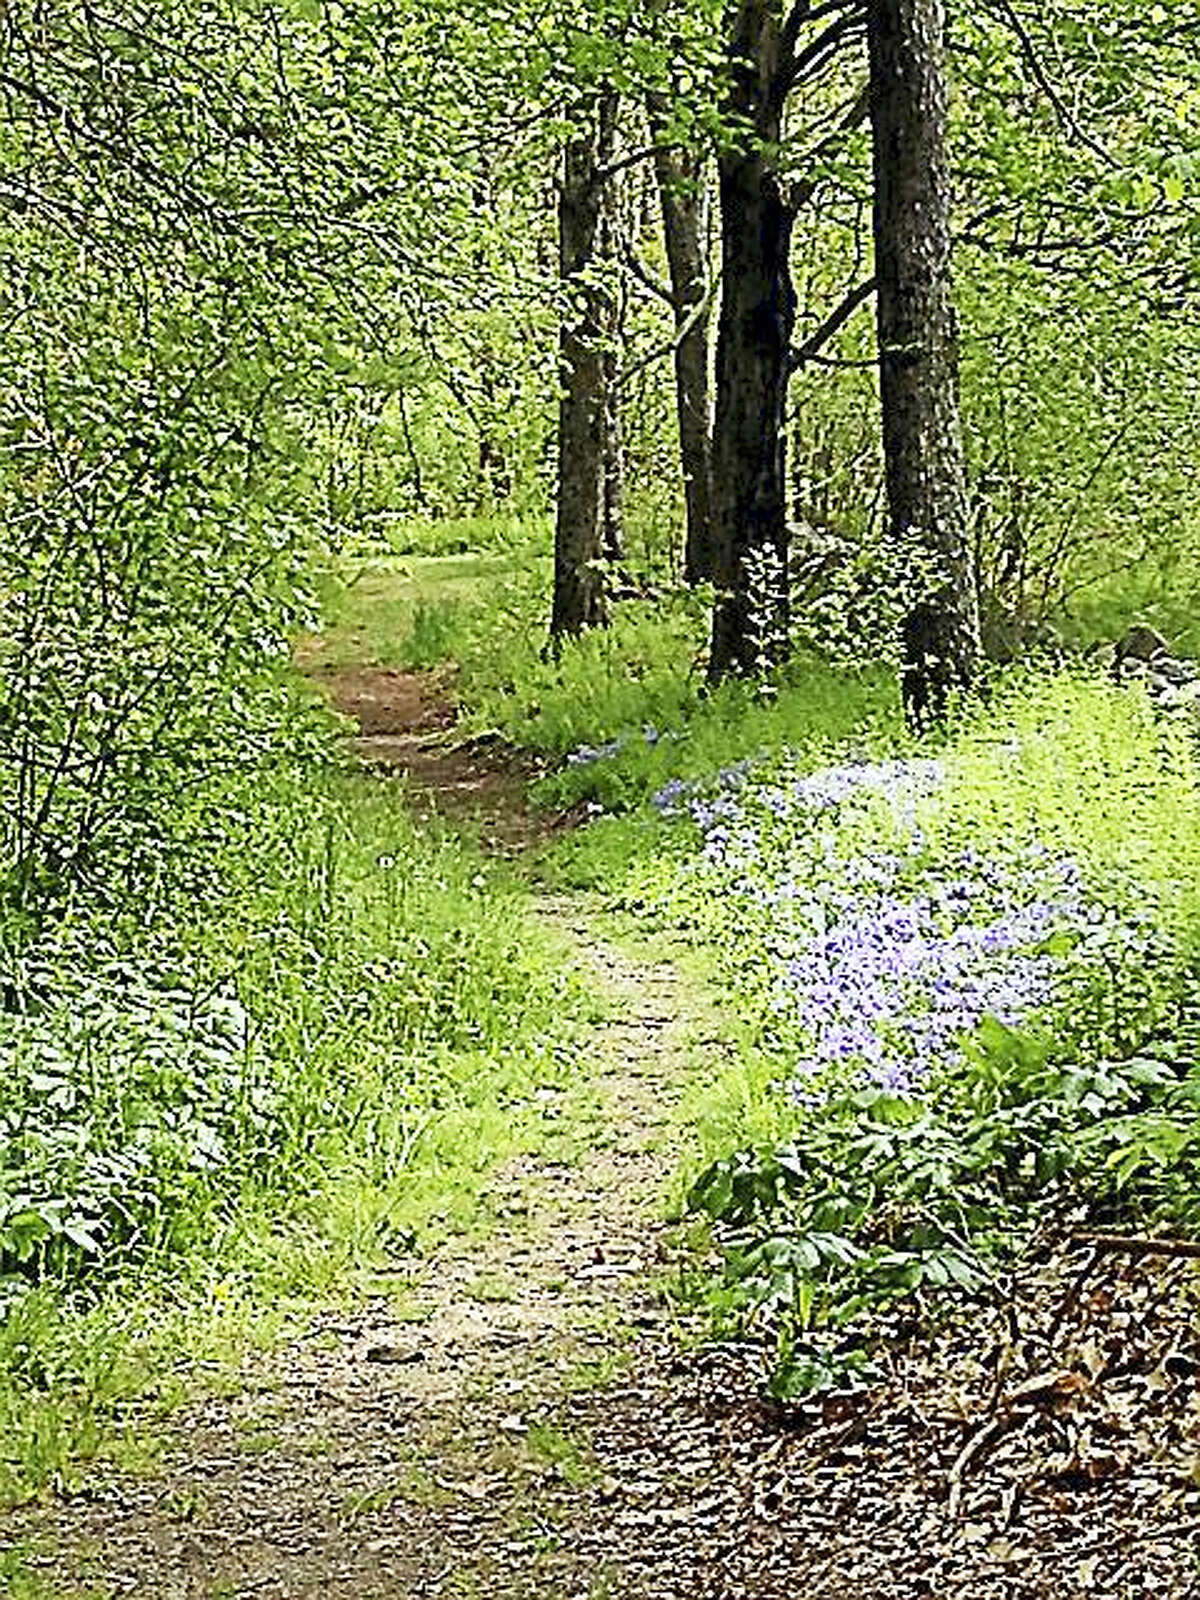 Walks on Flanders Nature Center's Botany Trail begin Sunday and continue on Sundays in May.